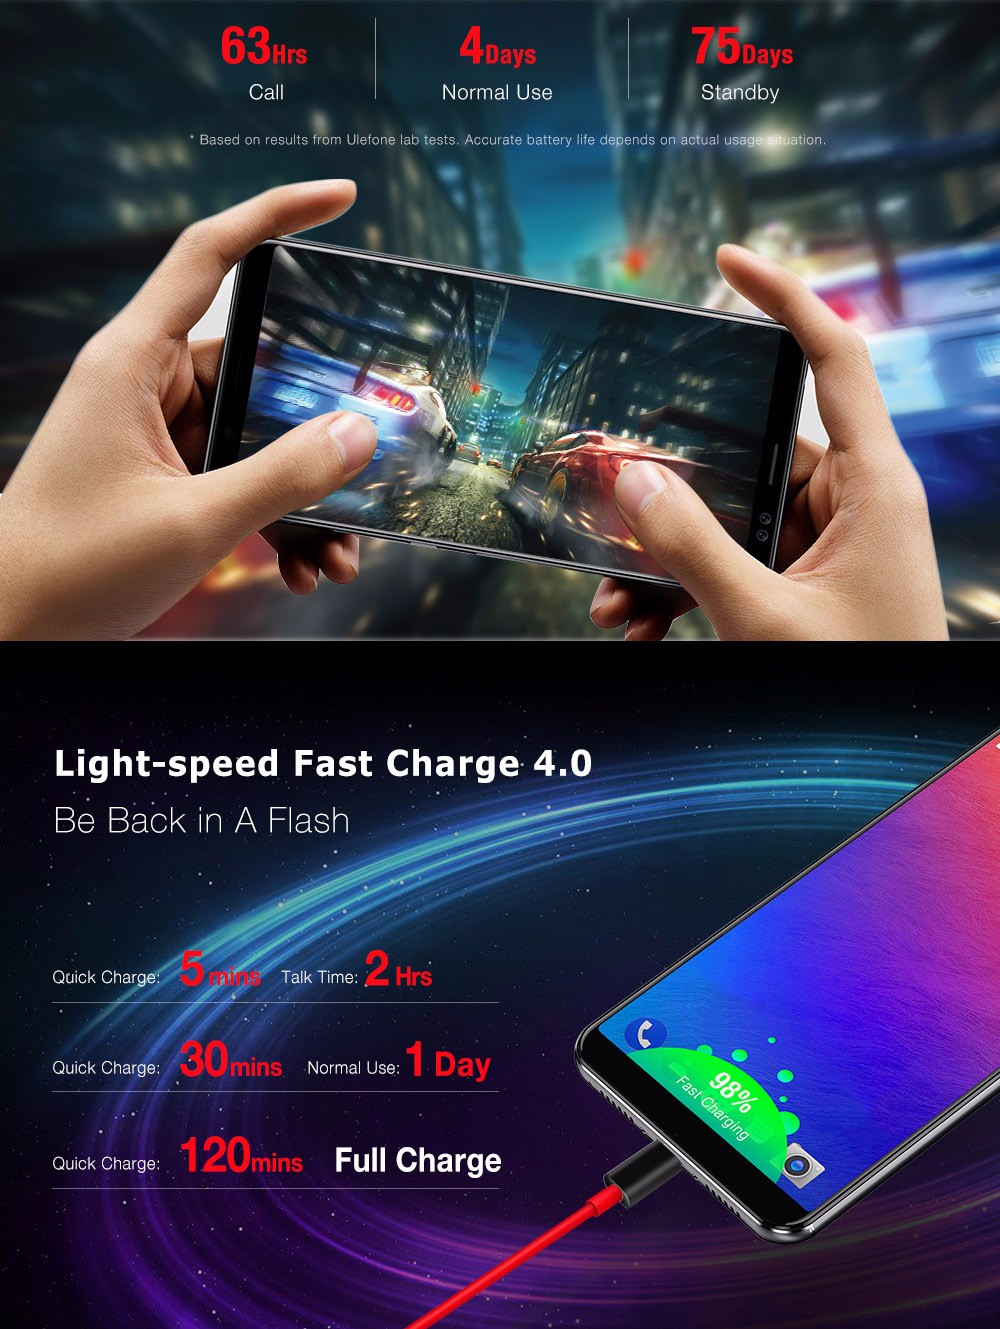 Ulefone Power 3 4G Phablet Android 7.1 6.0 inch MTK6763 Octa Core 2.0GHz 6GB RAM + 64GB ROM Hi-Fi Face Recognition Quad Cameras 6080mAh Battery Corning Gorilla Glass 4 Screen